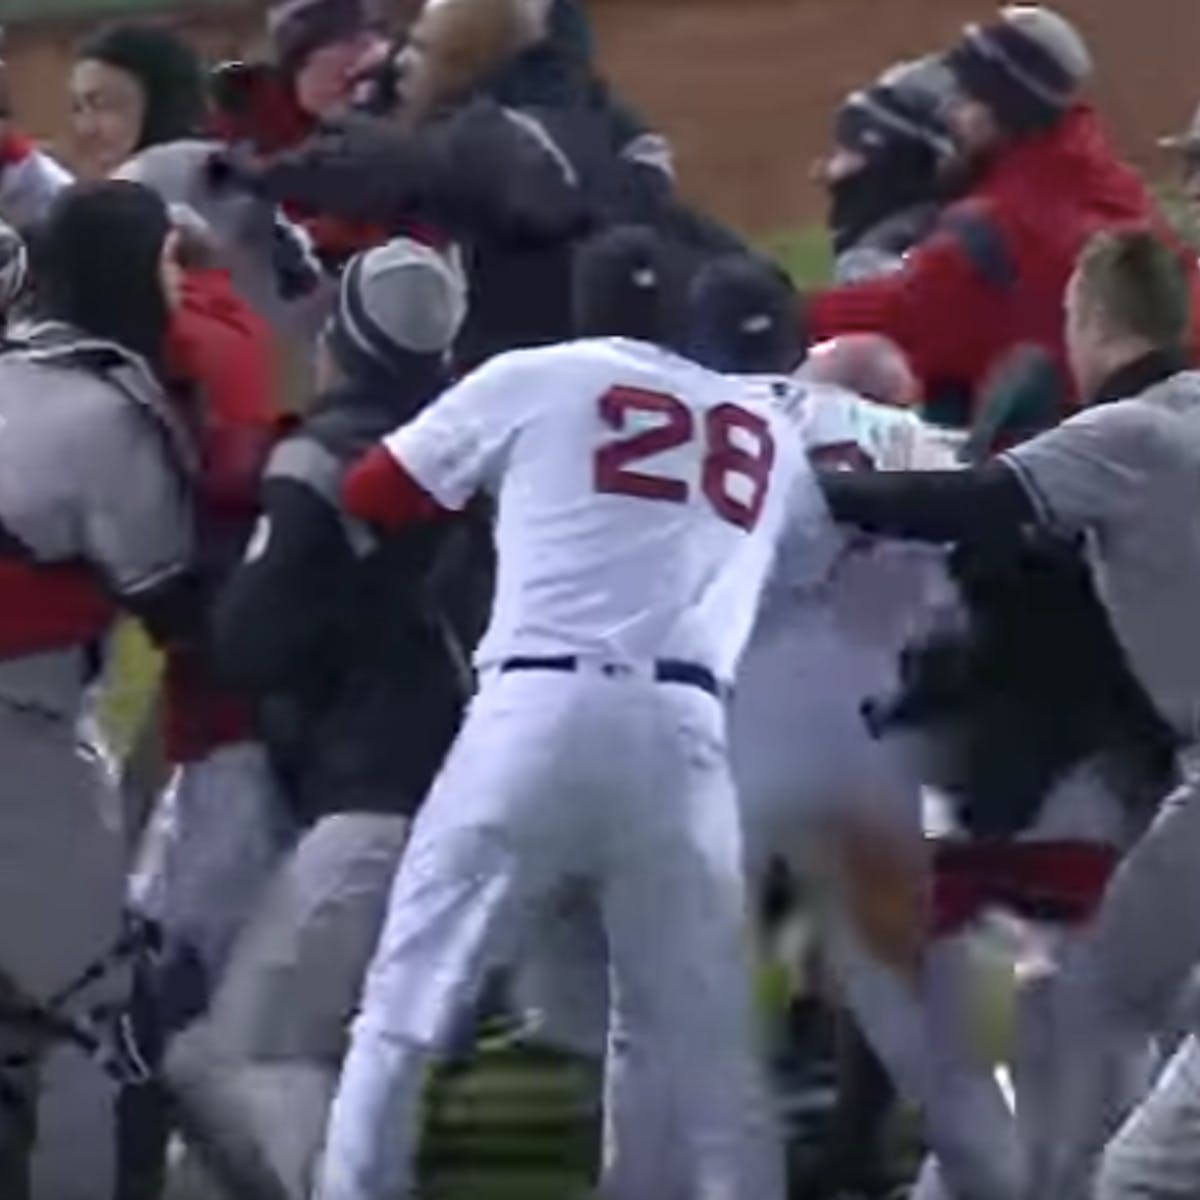 39bff9809 Yankees-Red Sox Brawl 2018  The Science of Why We Enjoy Violent Sports